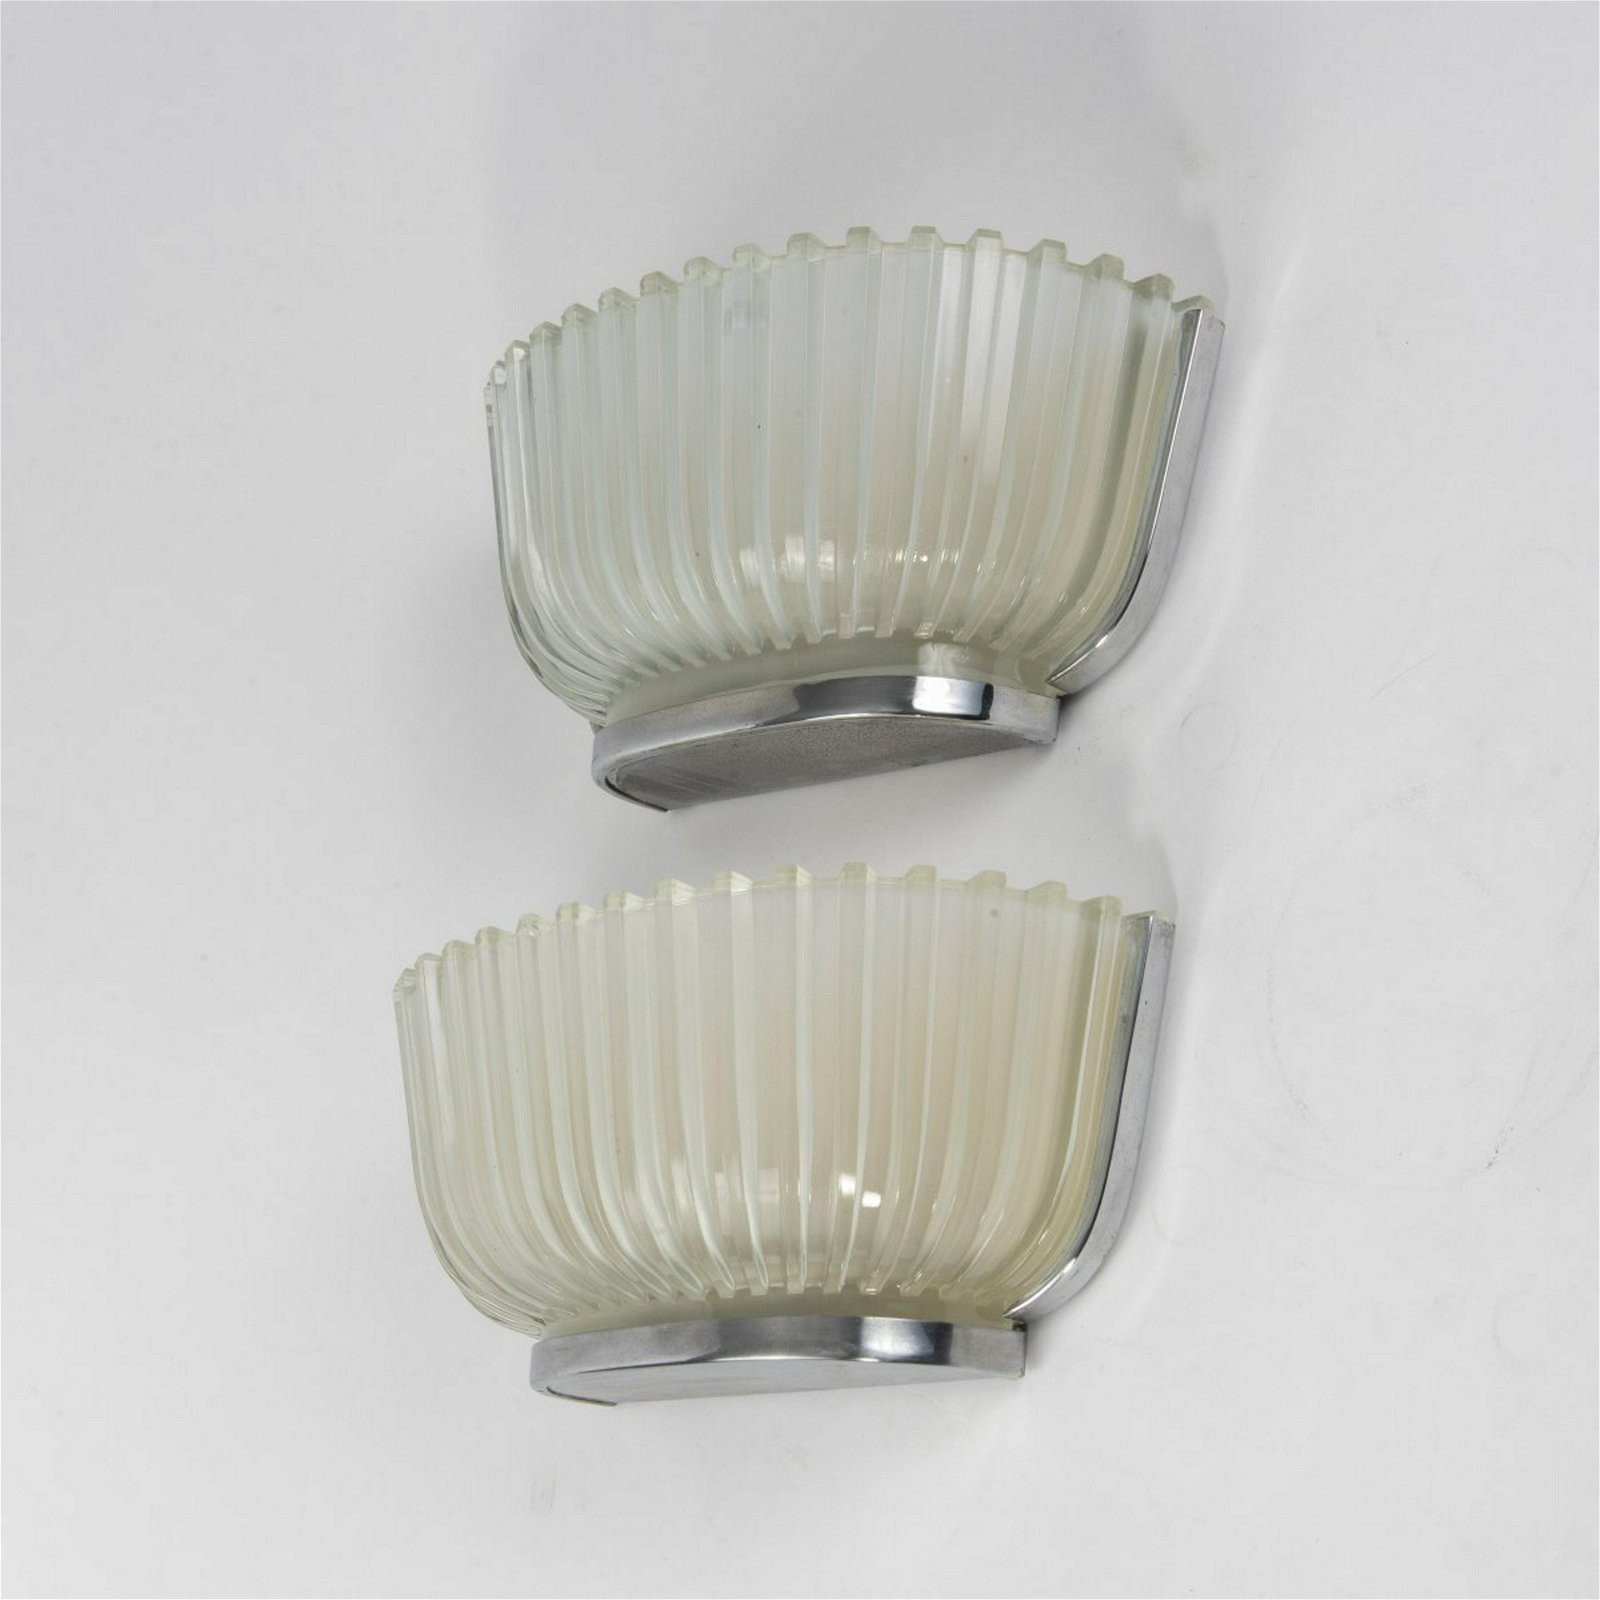 Italy, Two wall lights, 1940s